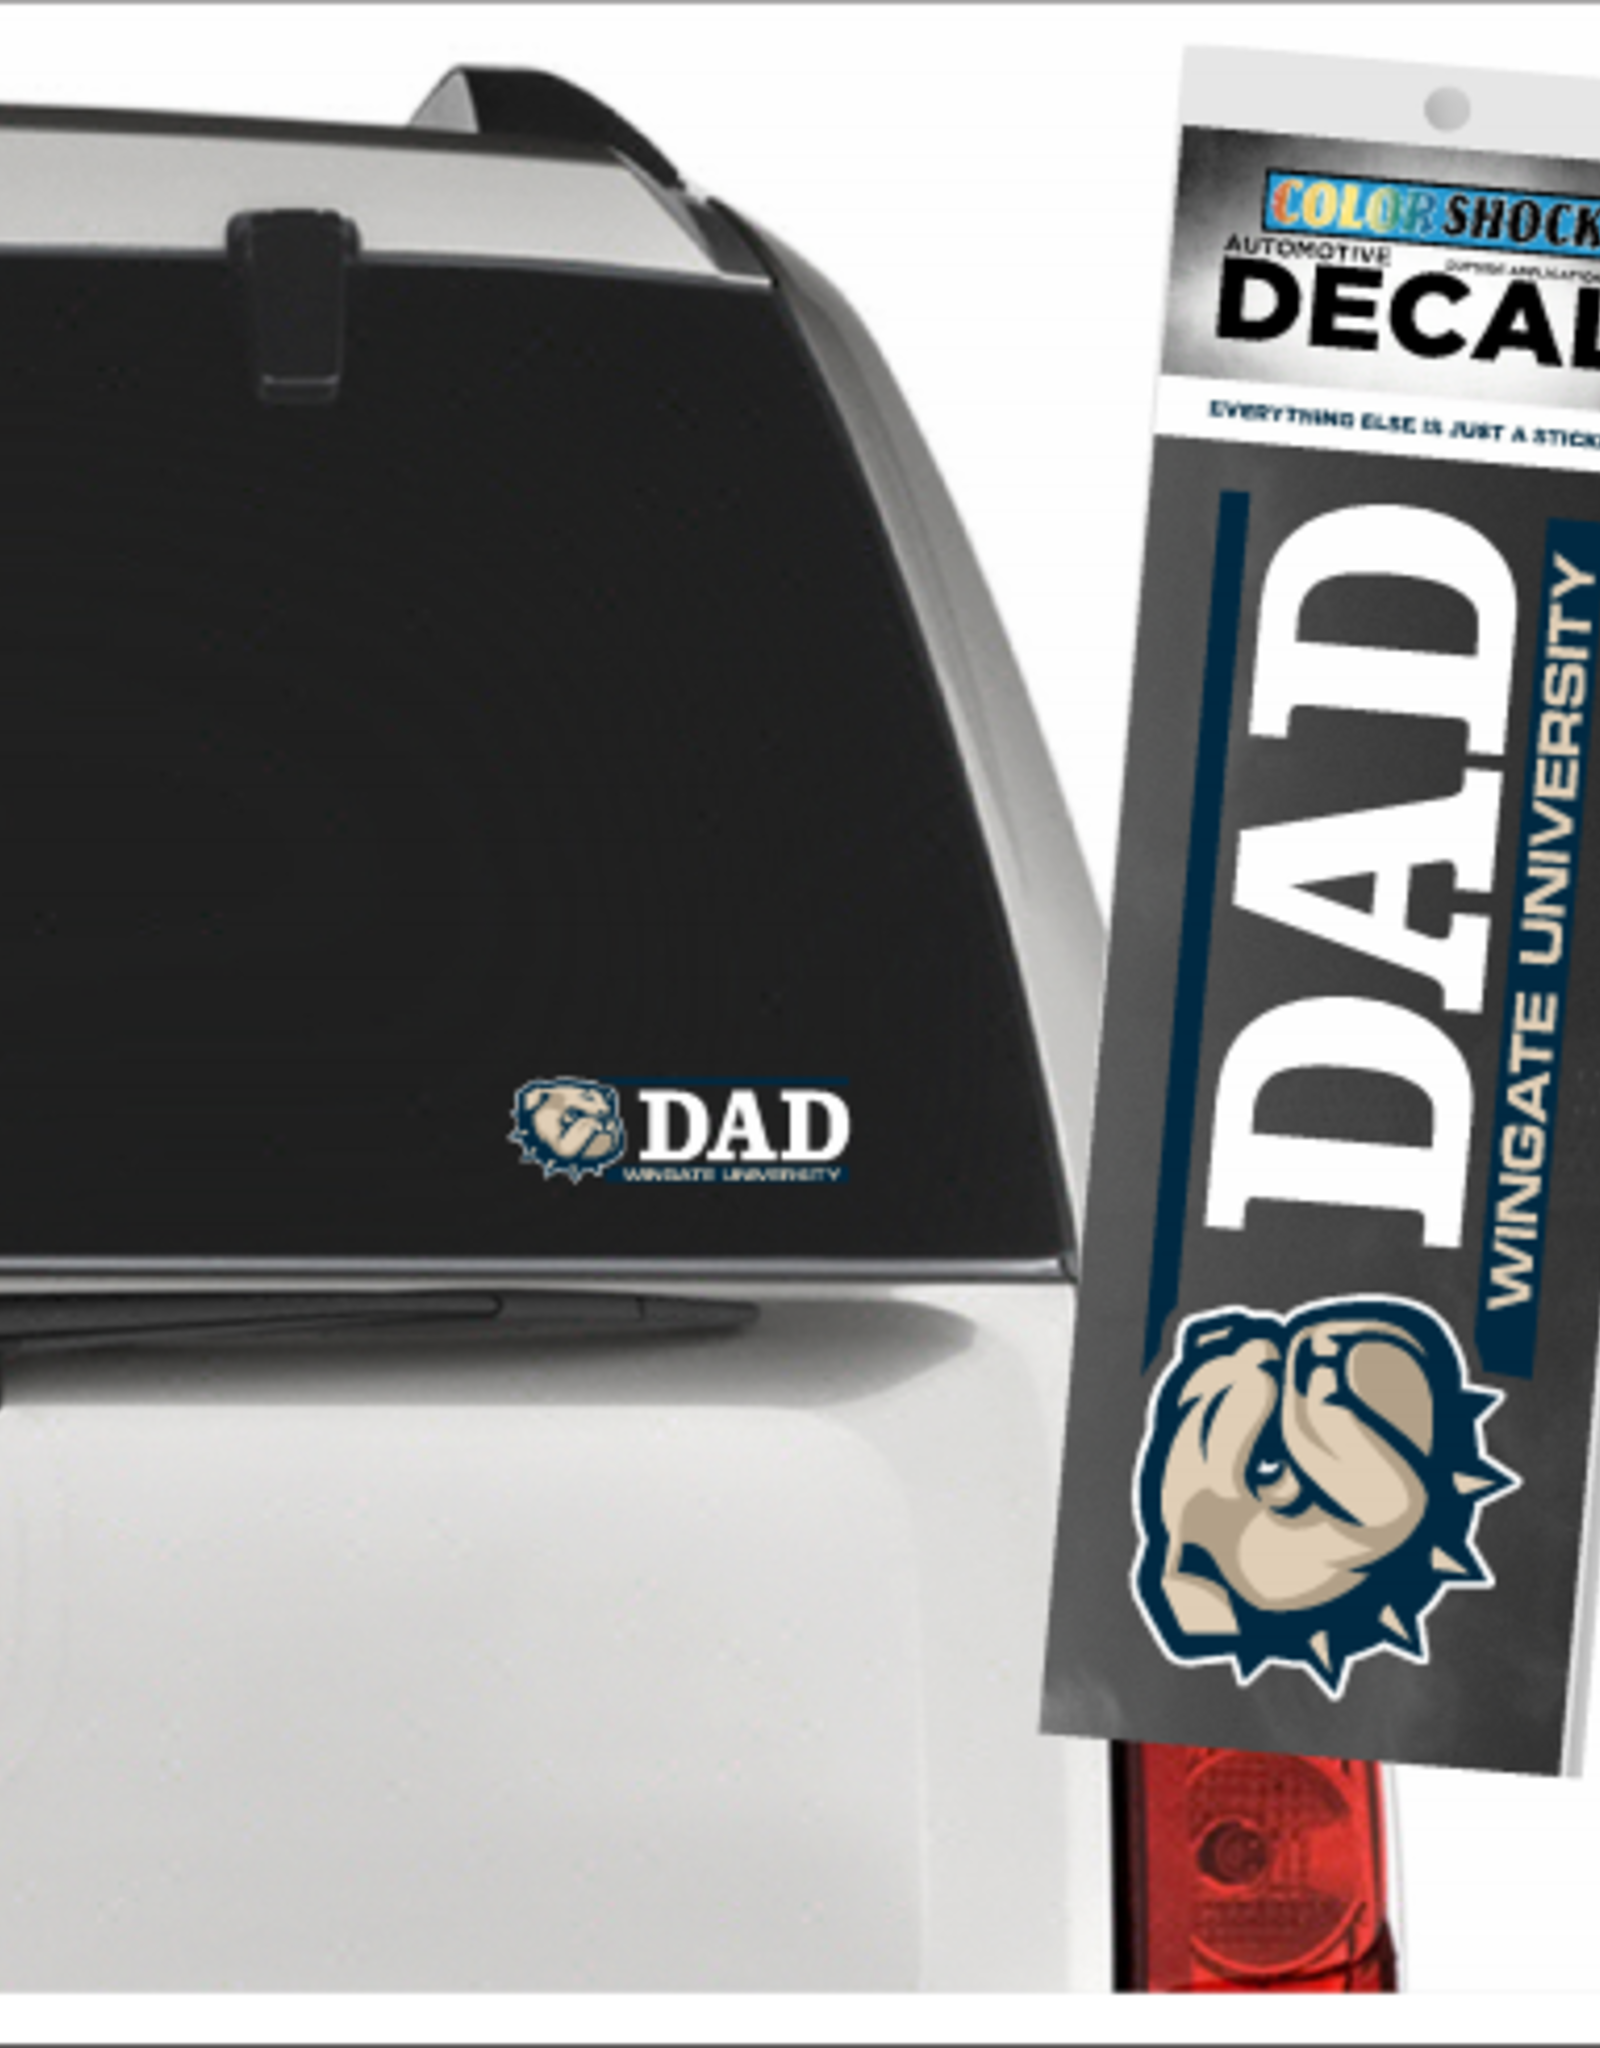 CDI 2 x 6 New Dog Head Dad Over Wingate University Decal